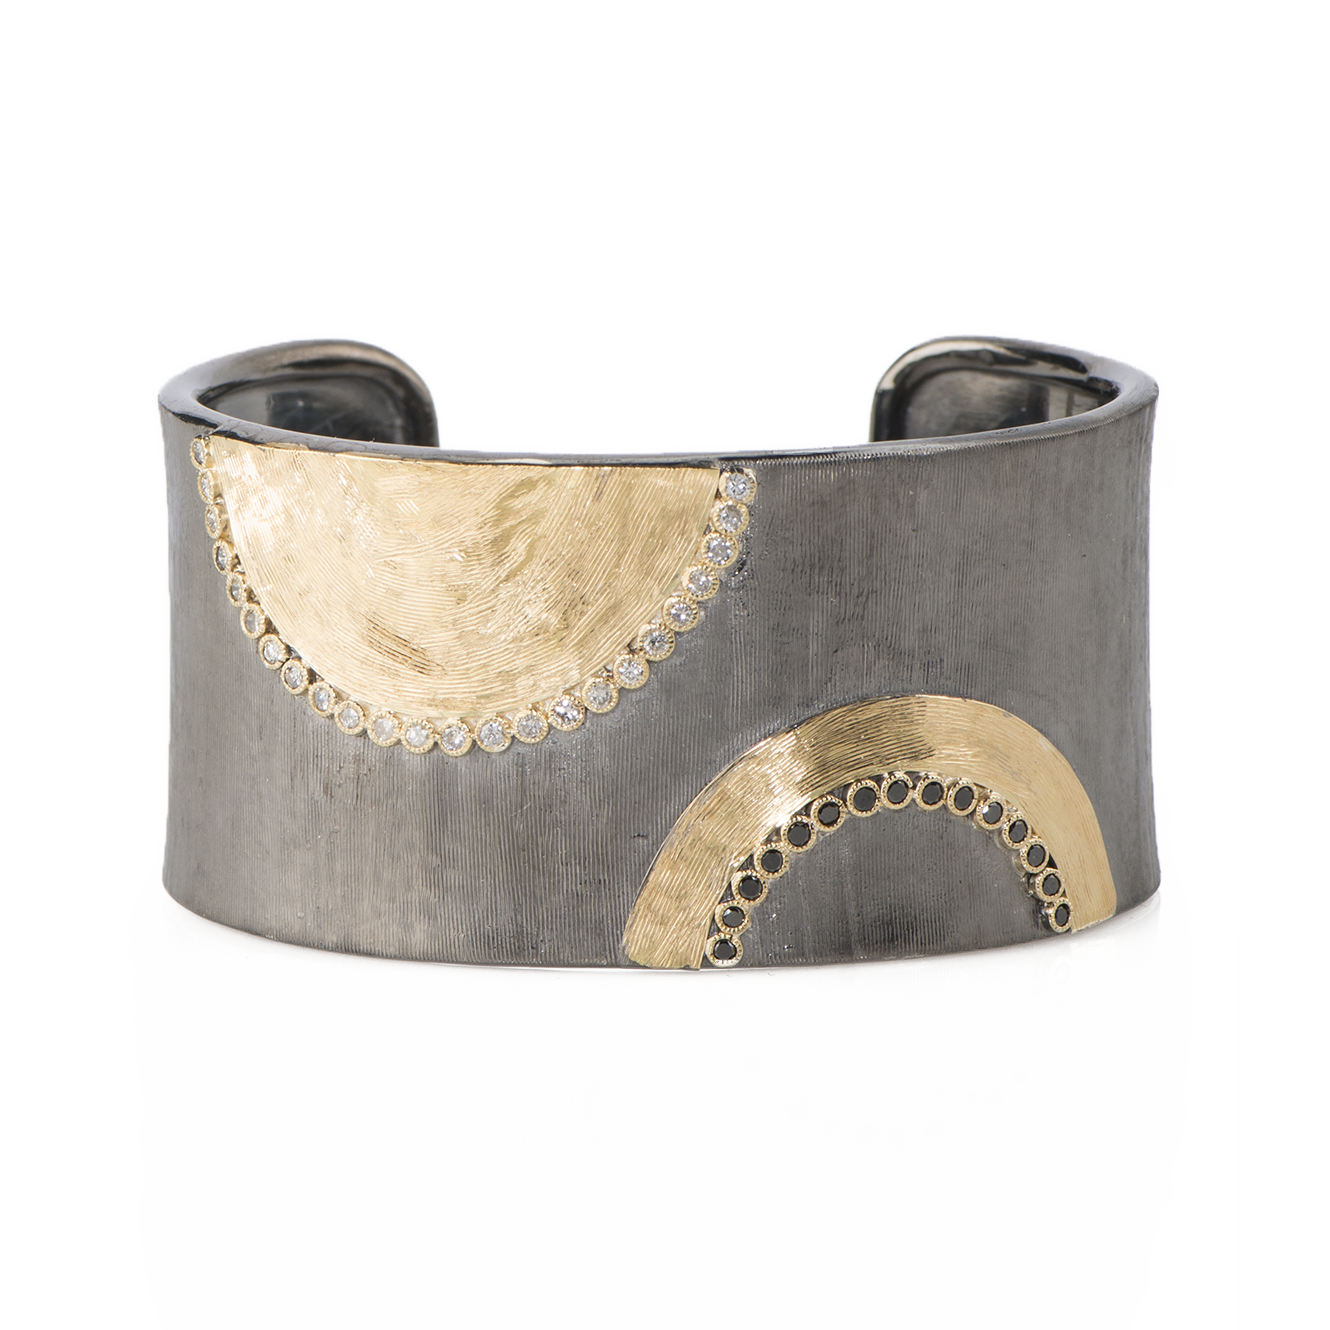 SILVER & YELLOW GOLD CUFF BRACELET WITH BLACK DIAMOND